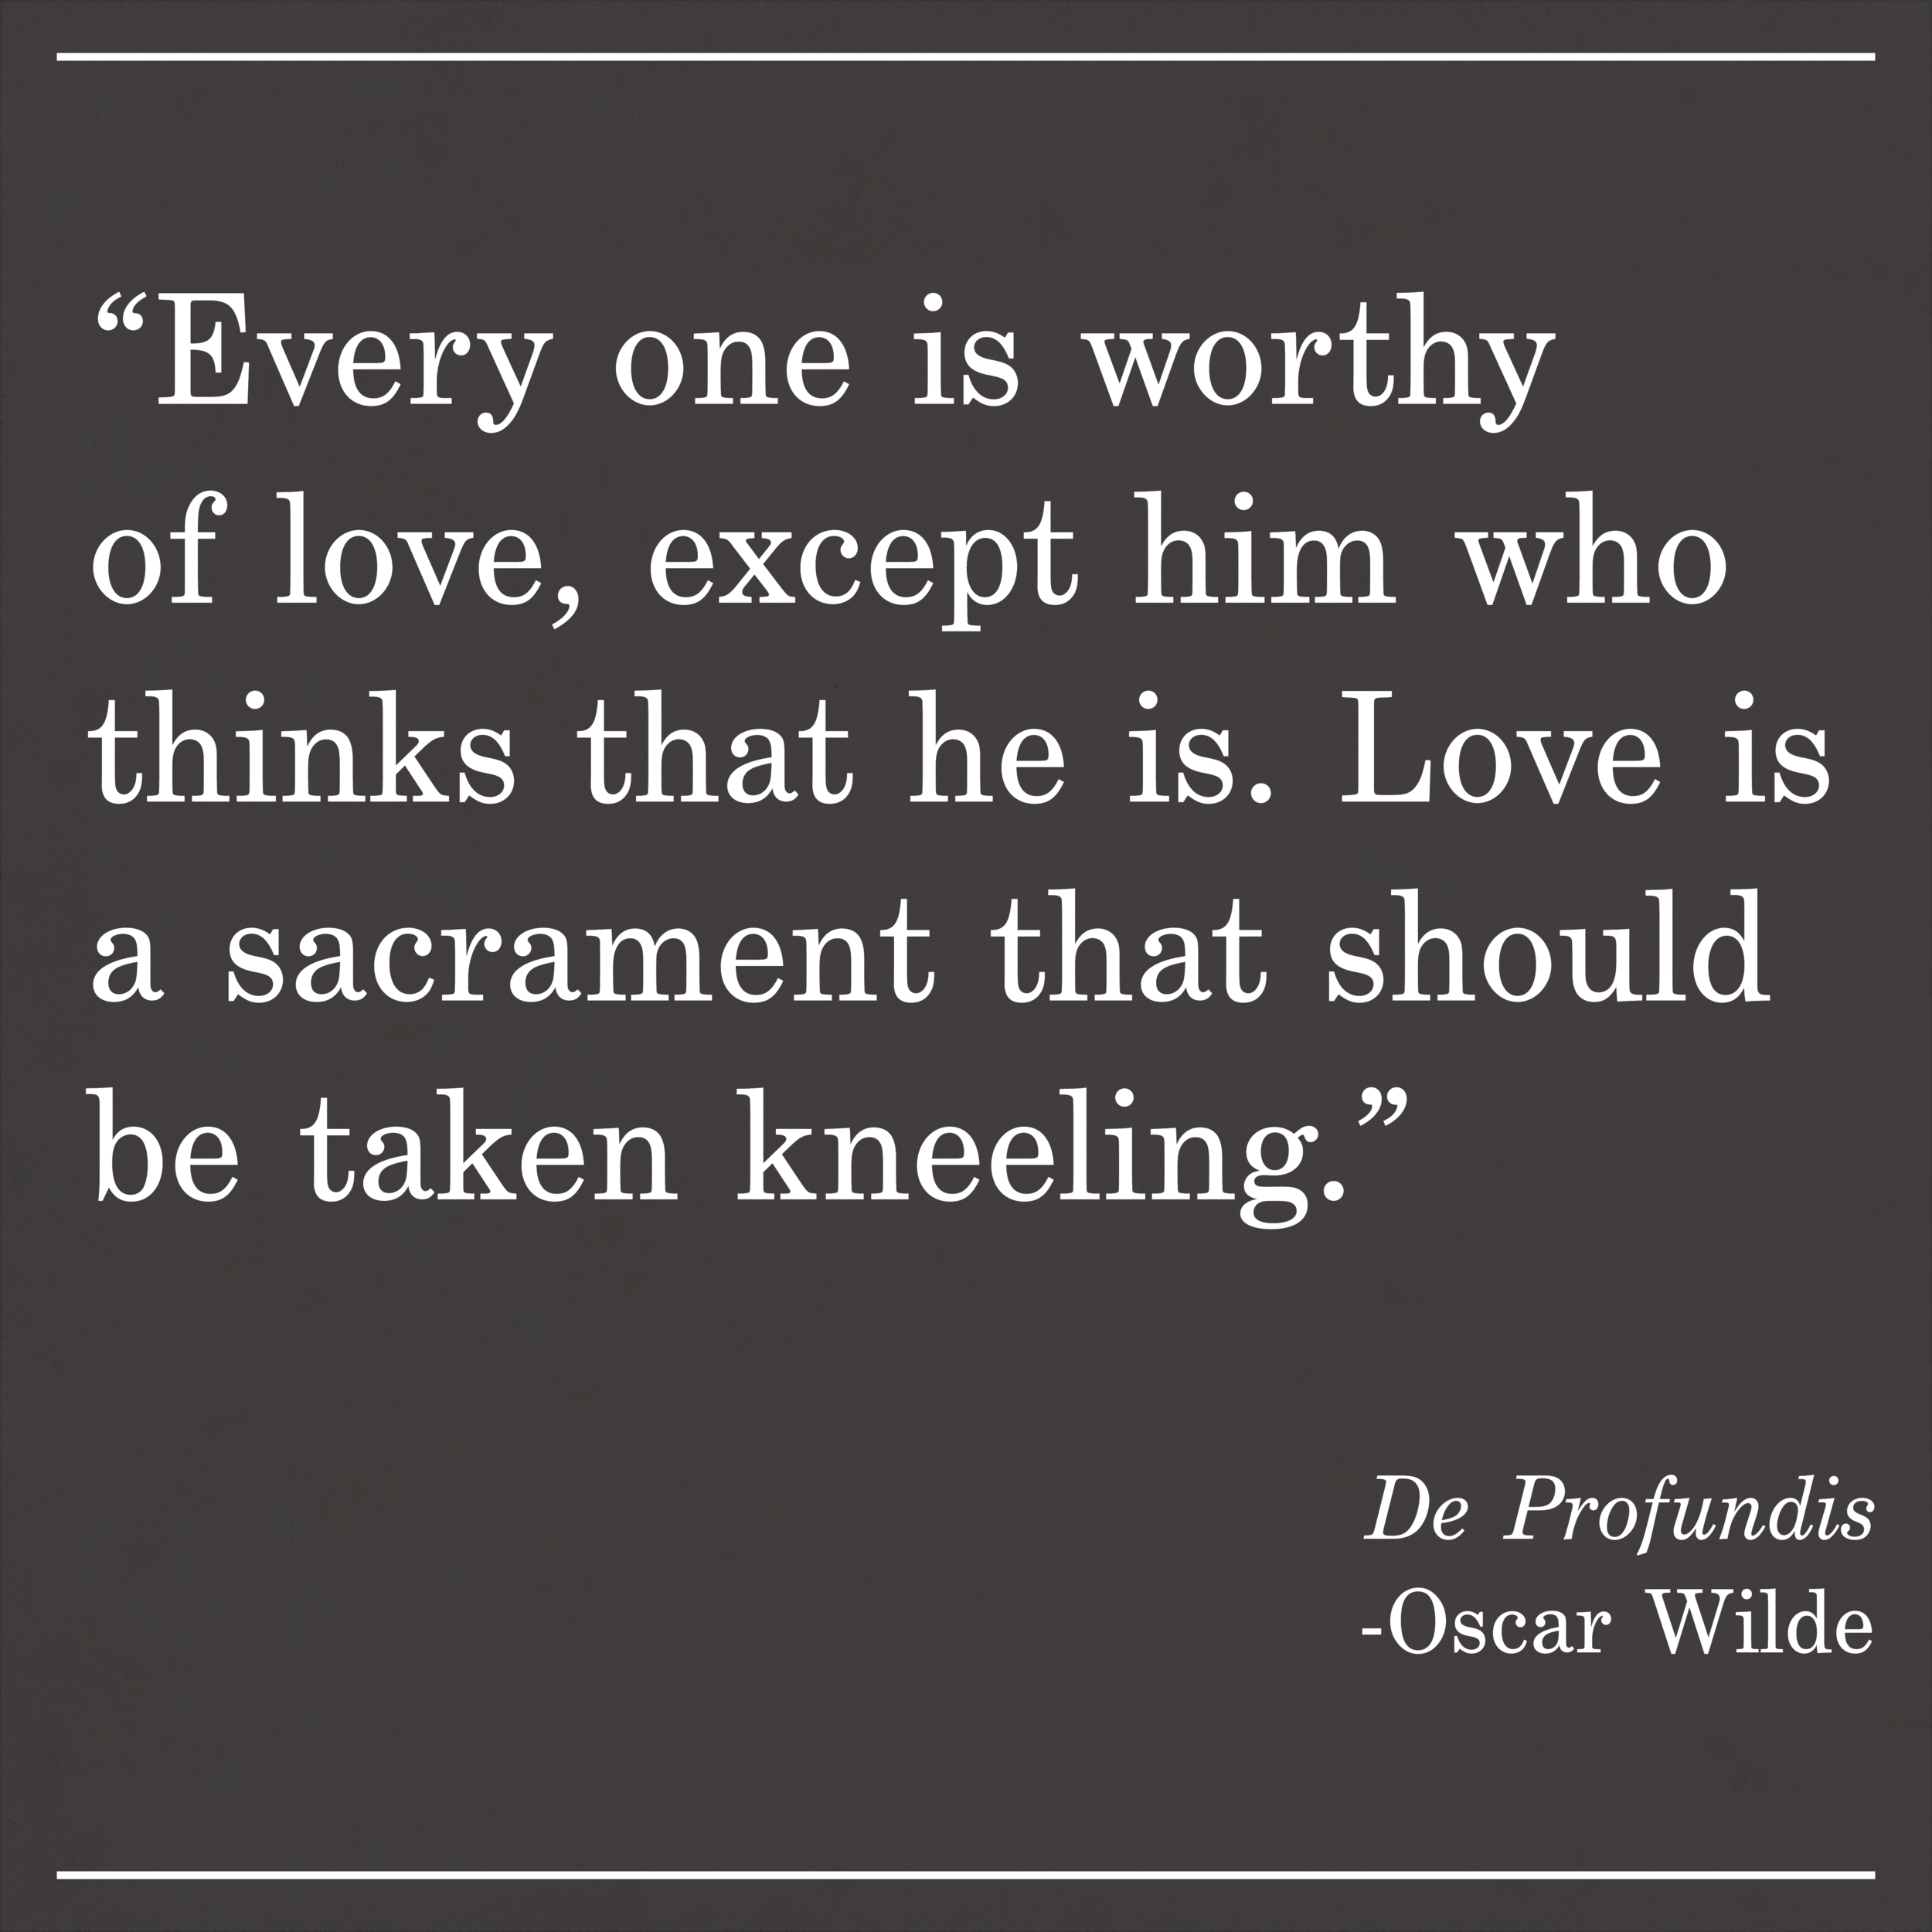 Daily Quote De Profundis by Oscar Wilde